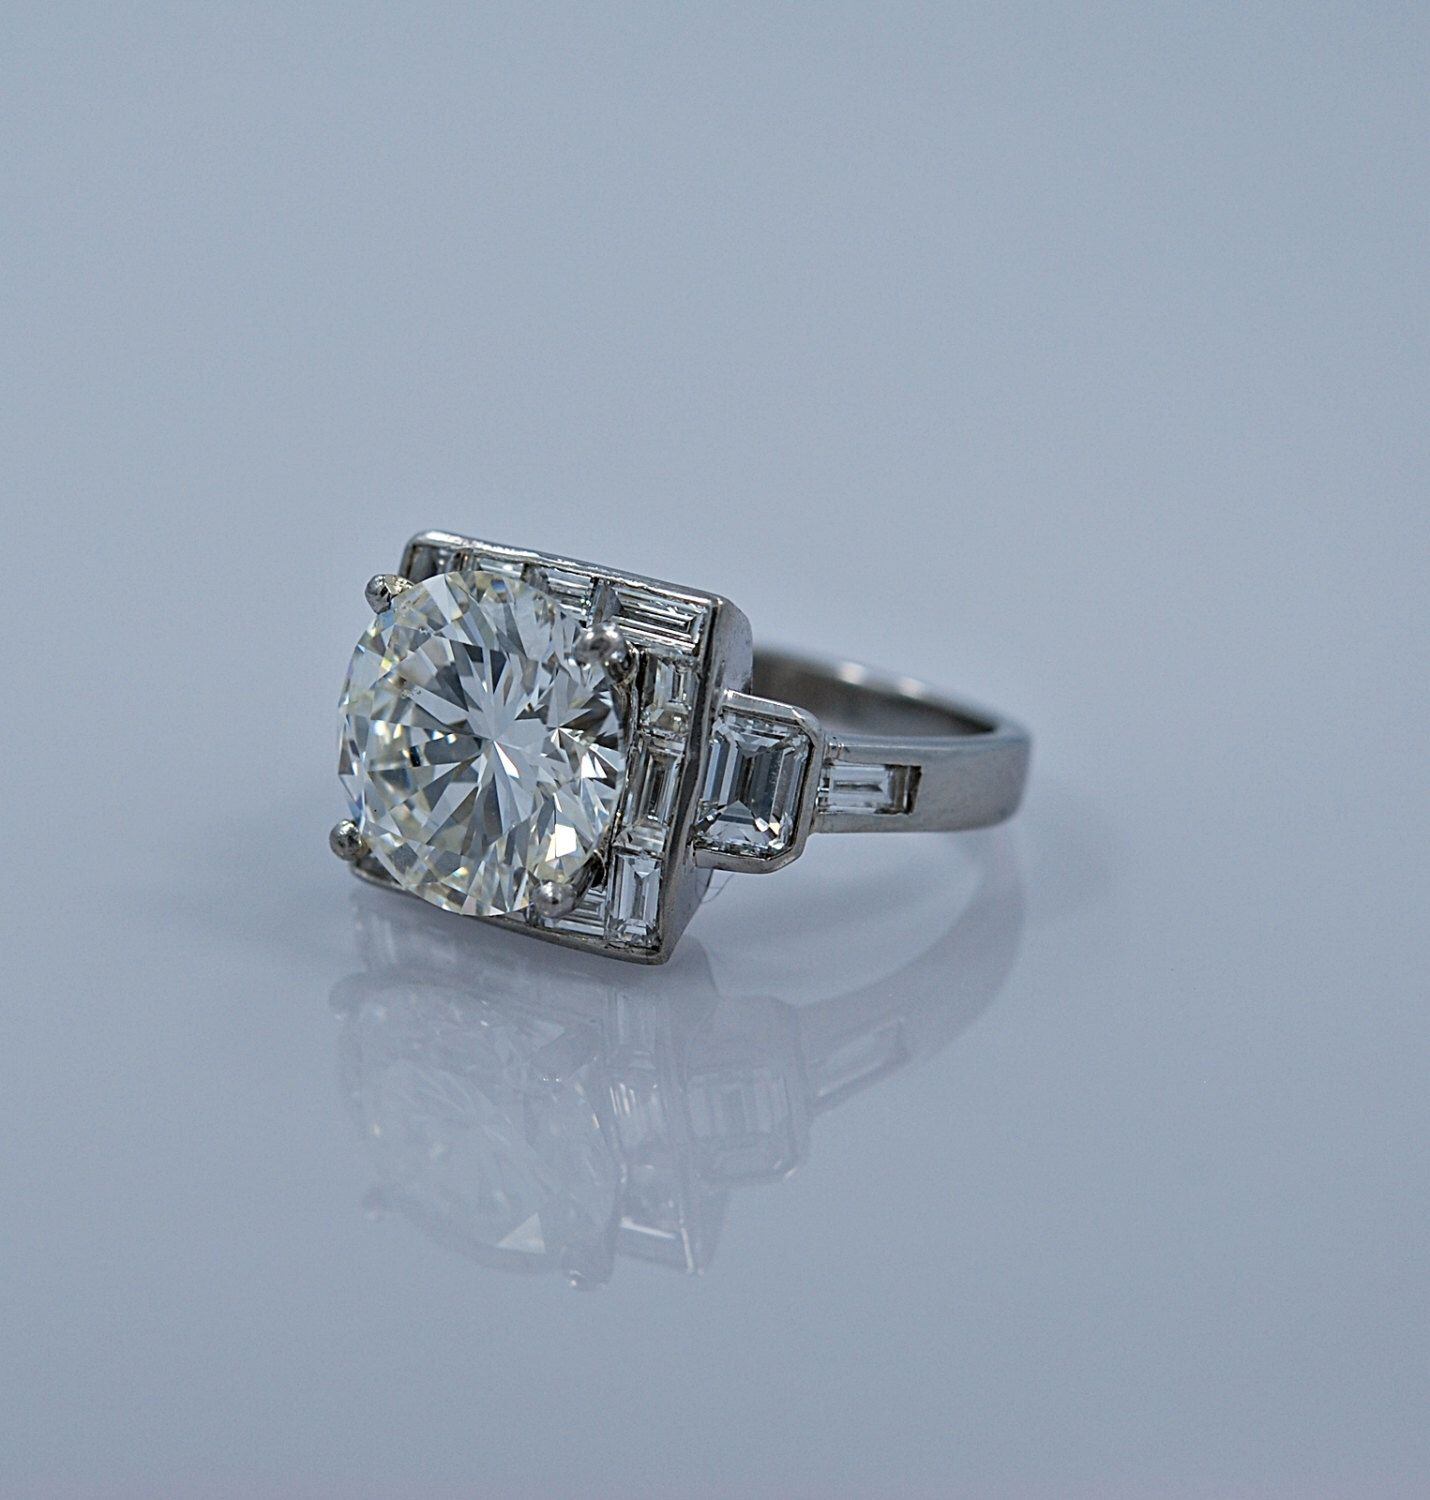 Vintage 6.42ct. Diamond & Platinum Art Deco Style Engagement Ring With G.I.A. Certificate - J35191 by GesnerEstateJewelry on Etsy https://www.etsy.com/listing/245508168/vintage-642ct-diamond-platinum-art-deco